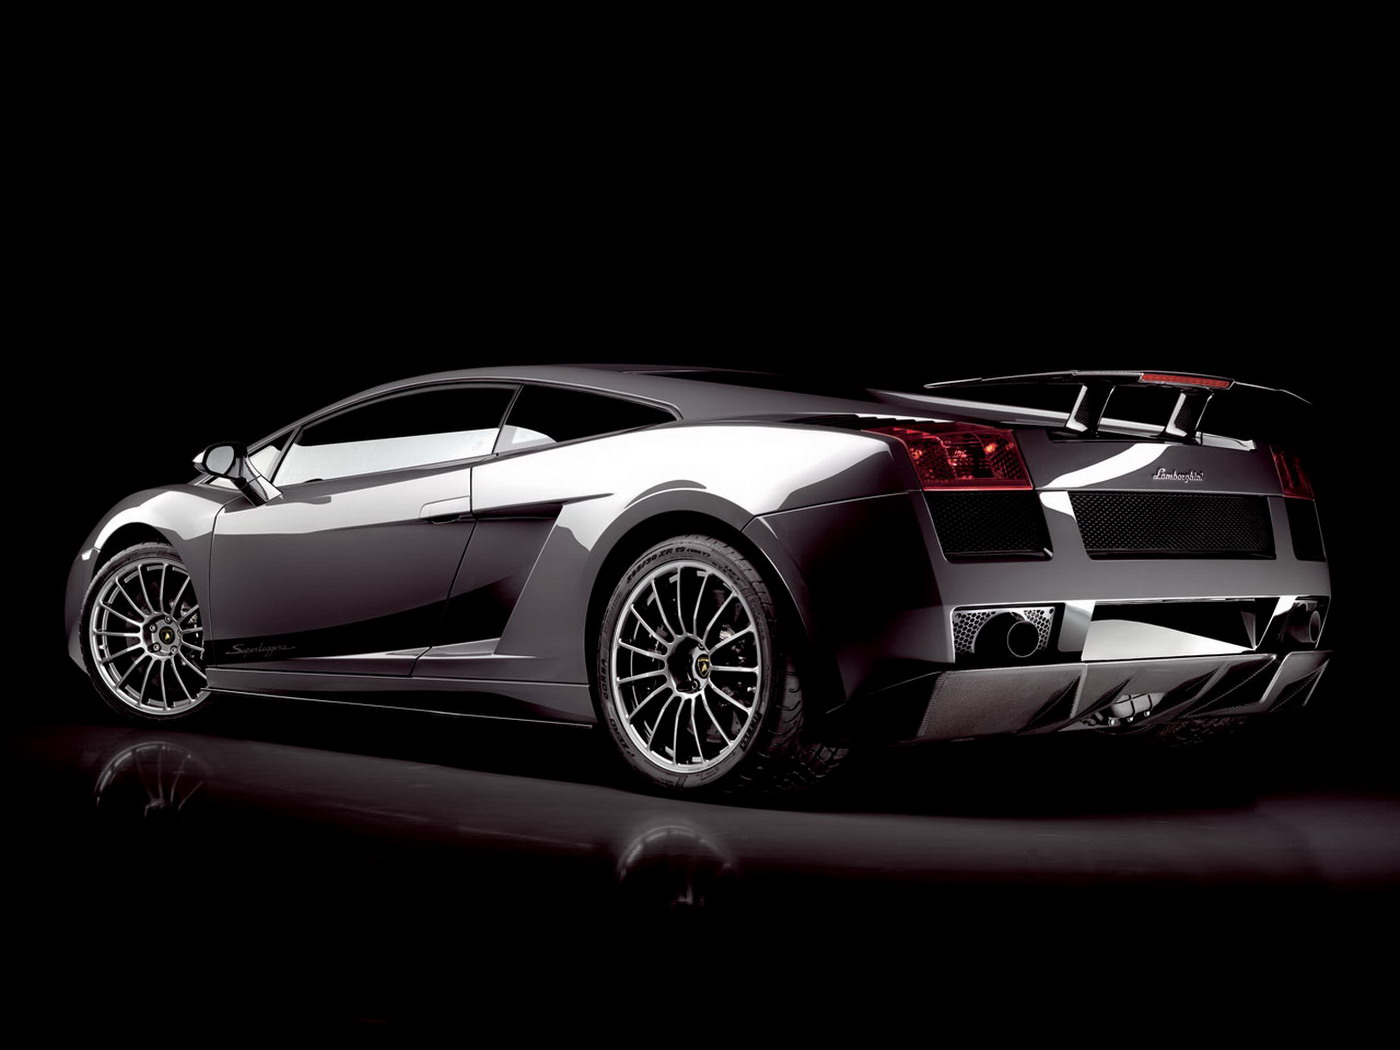 Hd Cars Wallpapers The Fast Cars